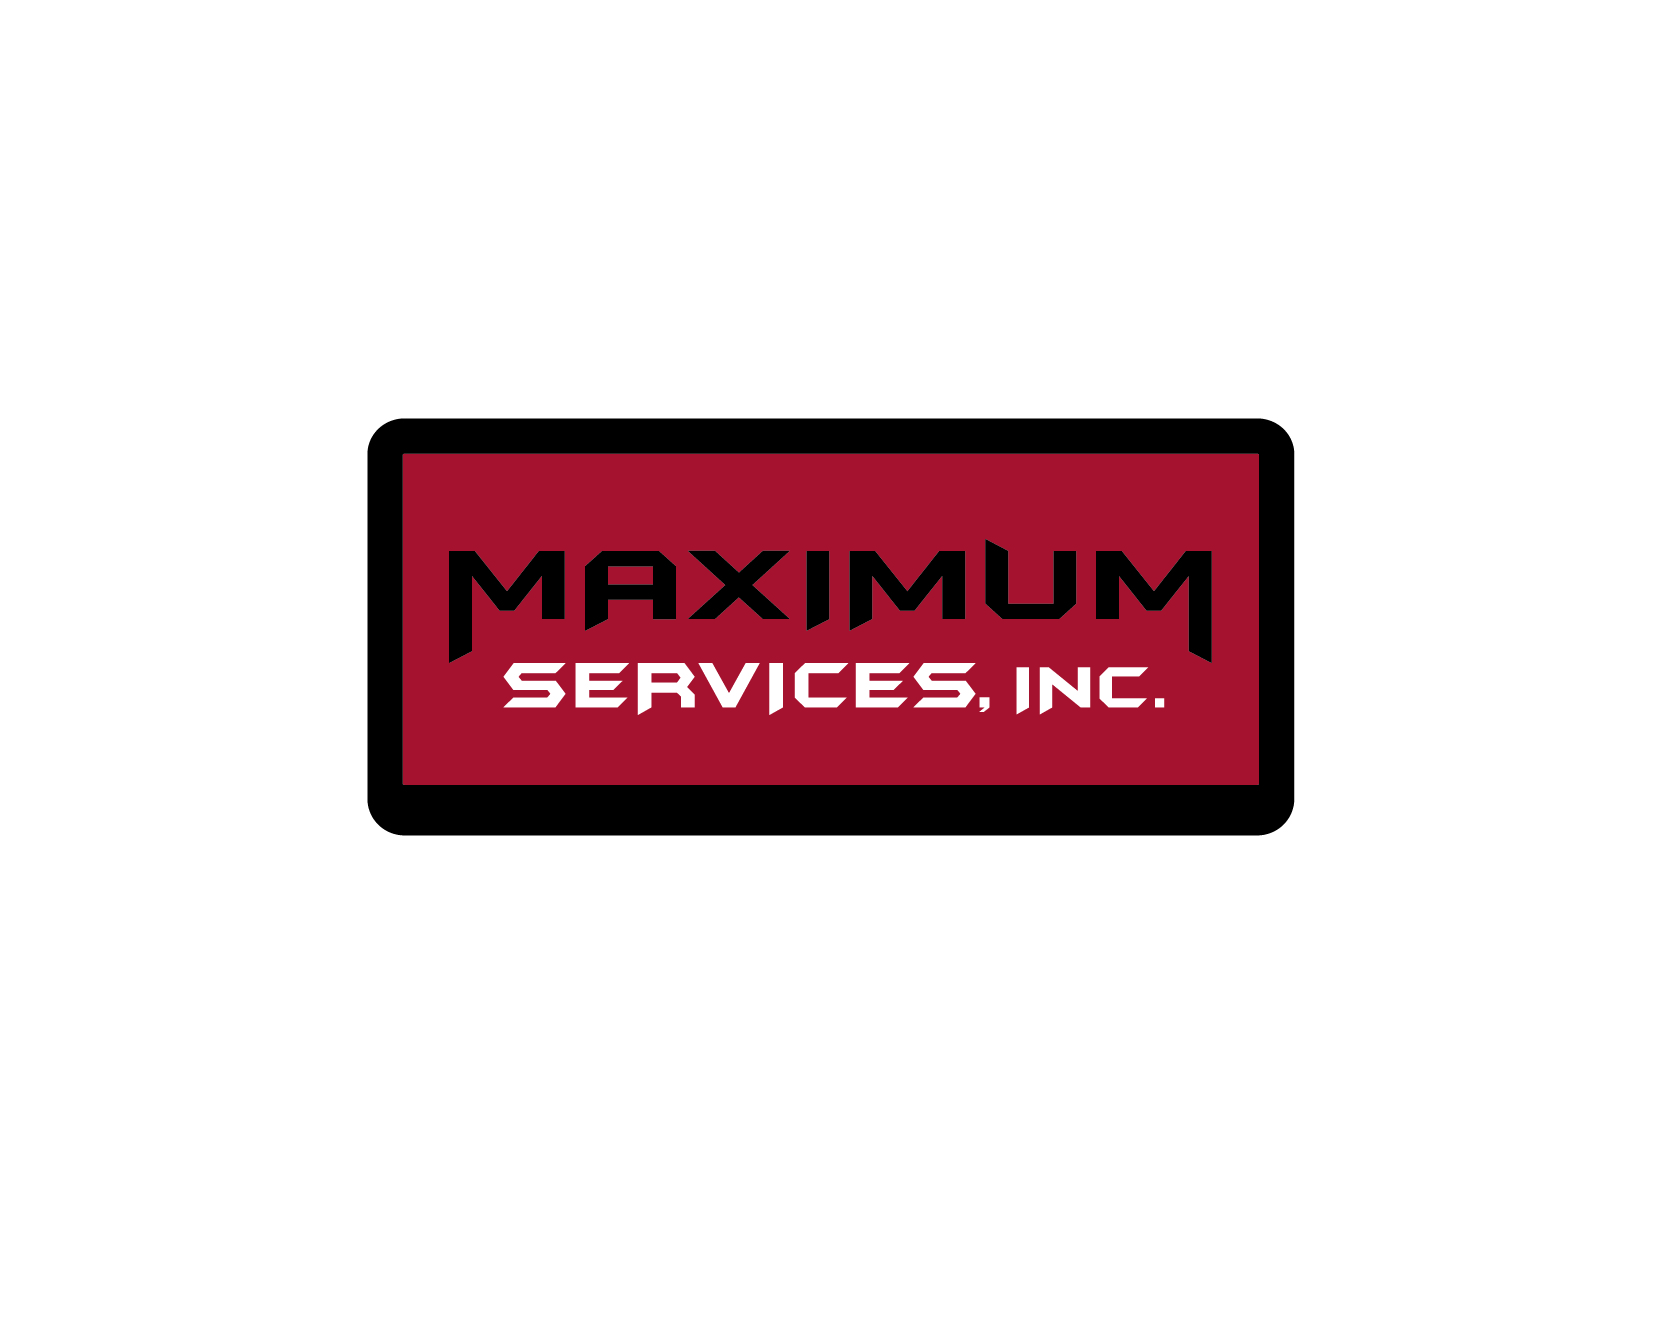 Maximum Services | Identity